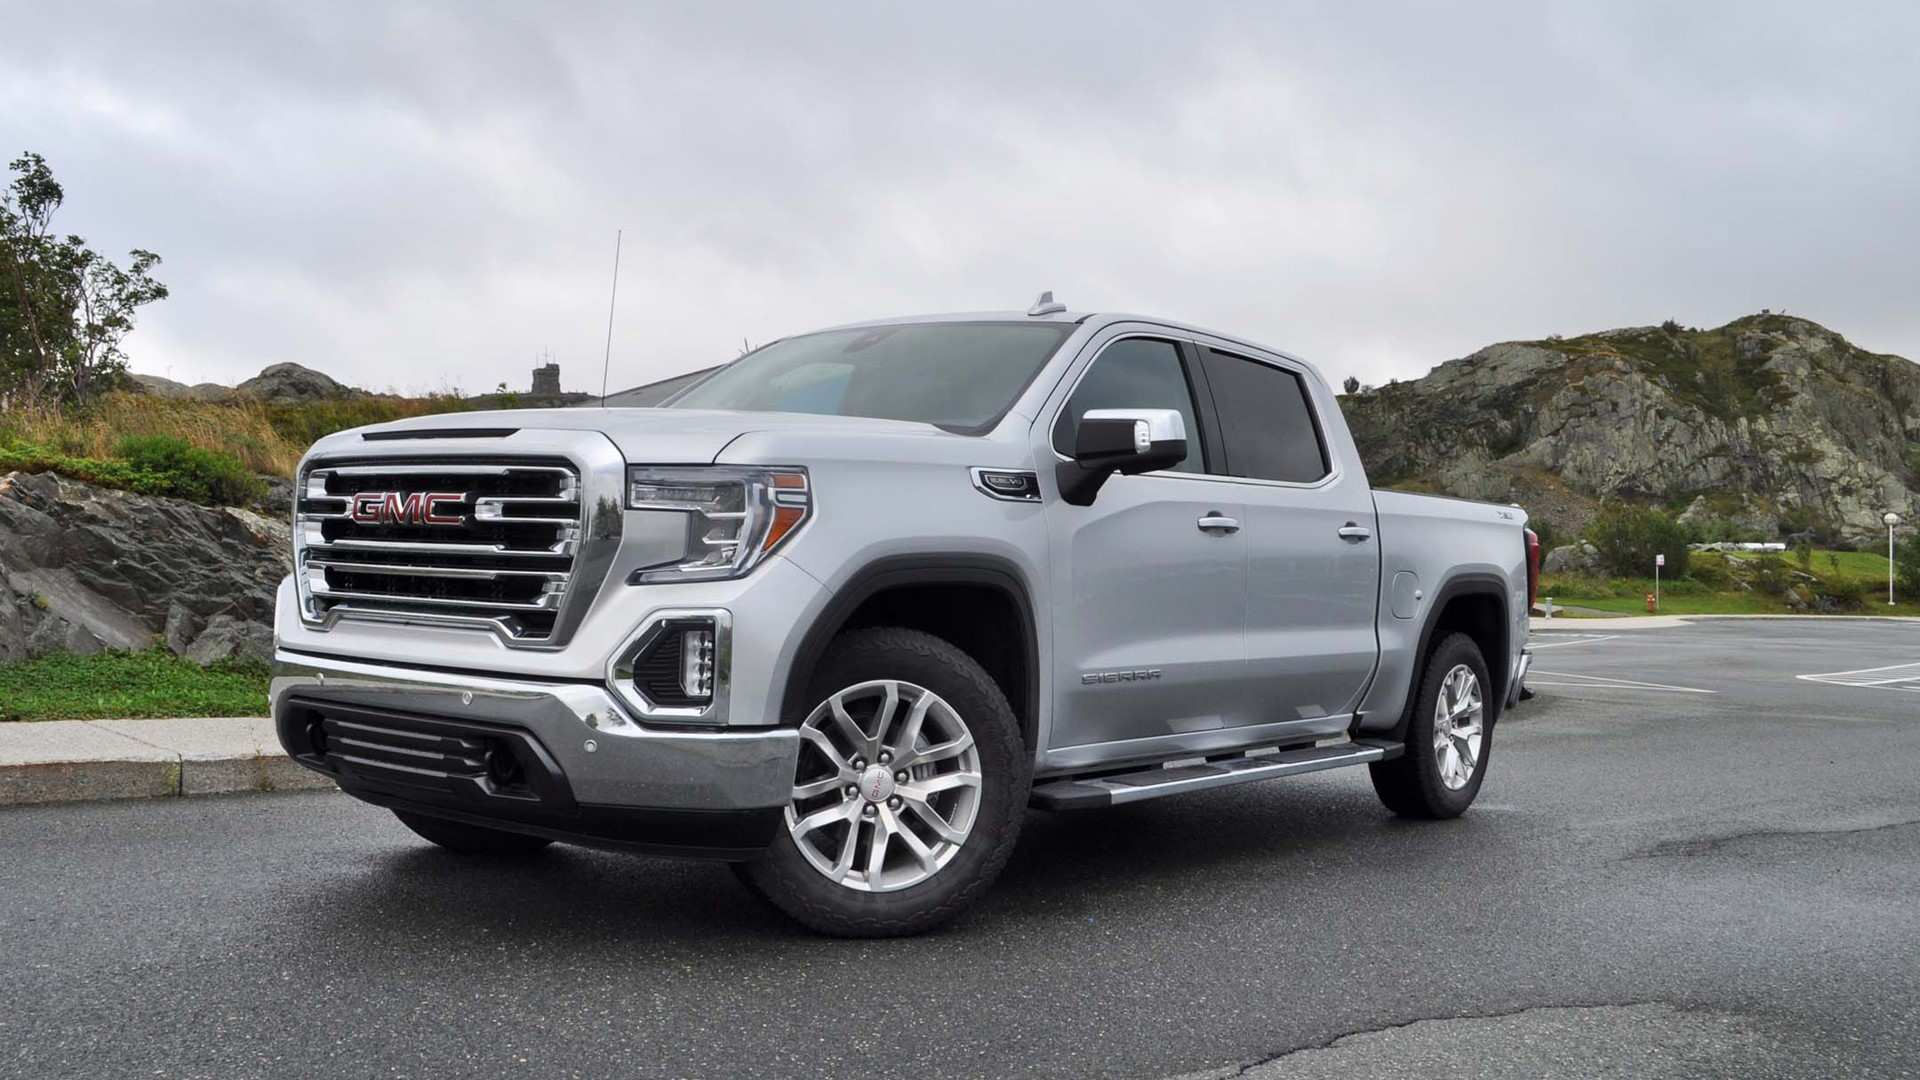 59 The Best 2019 GMC Sierra New Concept